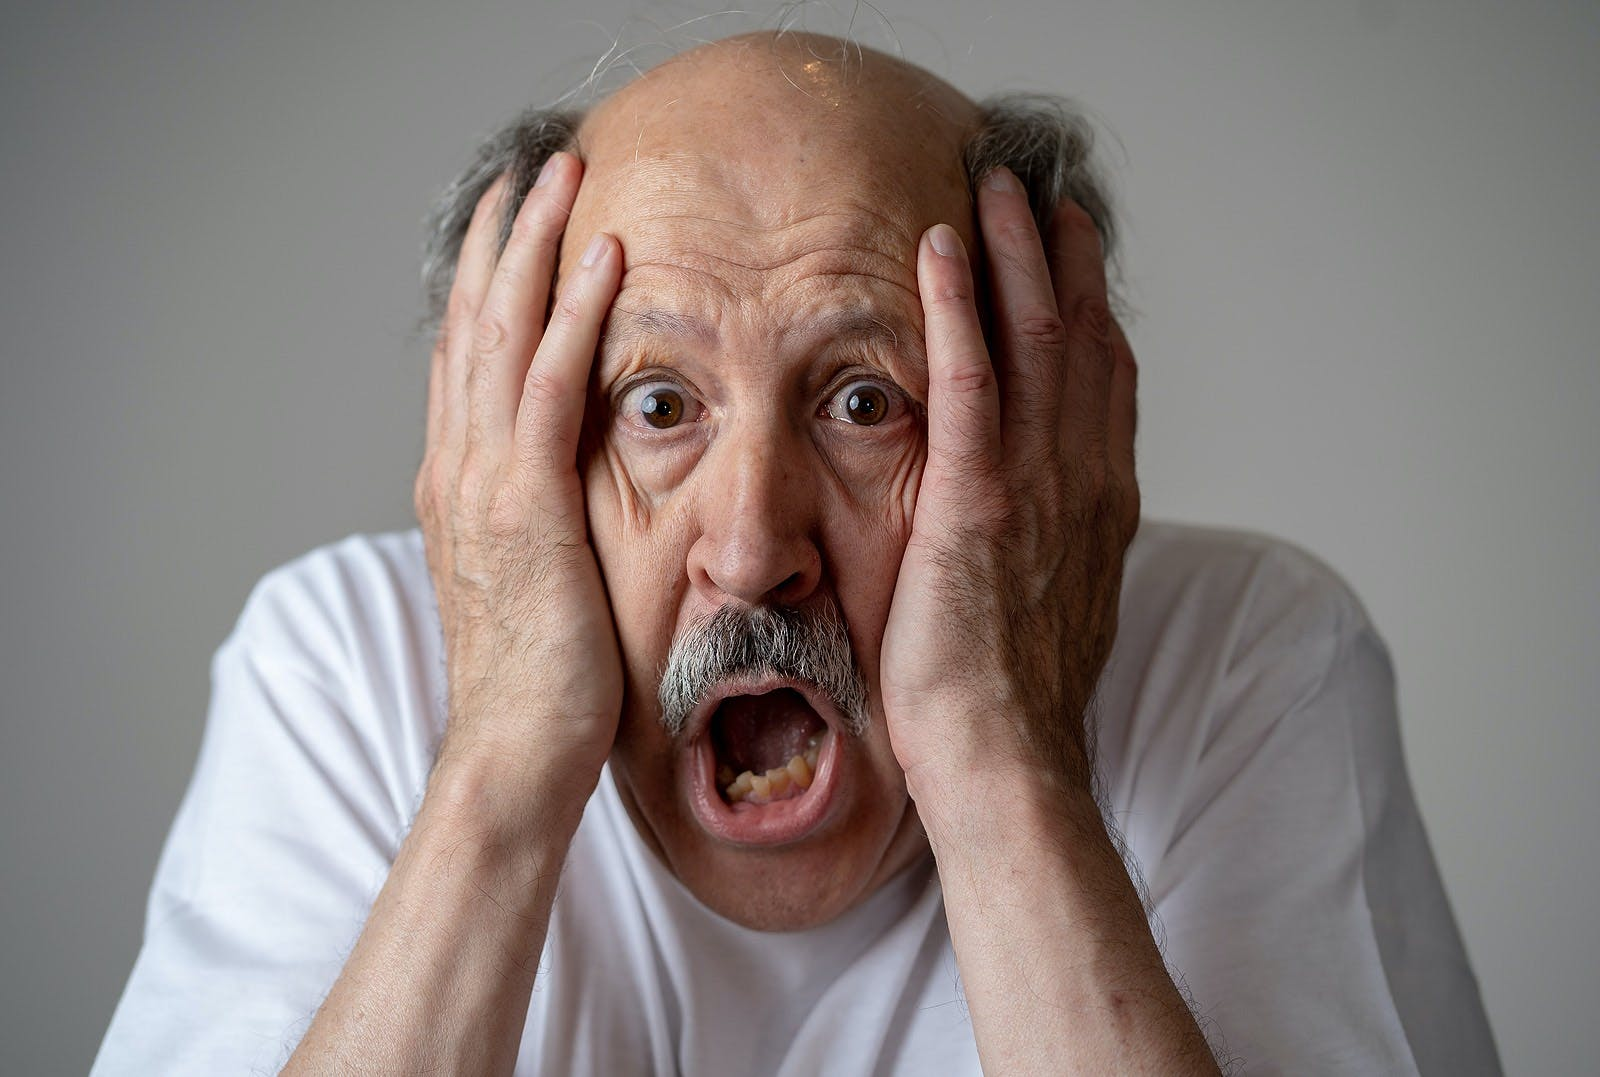 Close up portrait of senior man looking confused and lost suffering from dementia, memory loss or Alzheimer in Mental health in Older Adults and later life concept isolated on grey background.